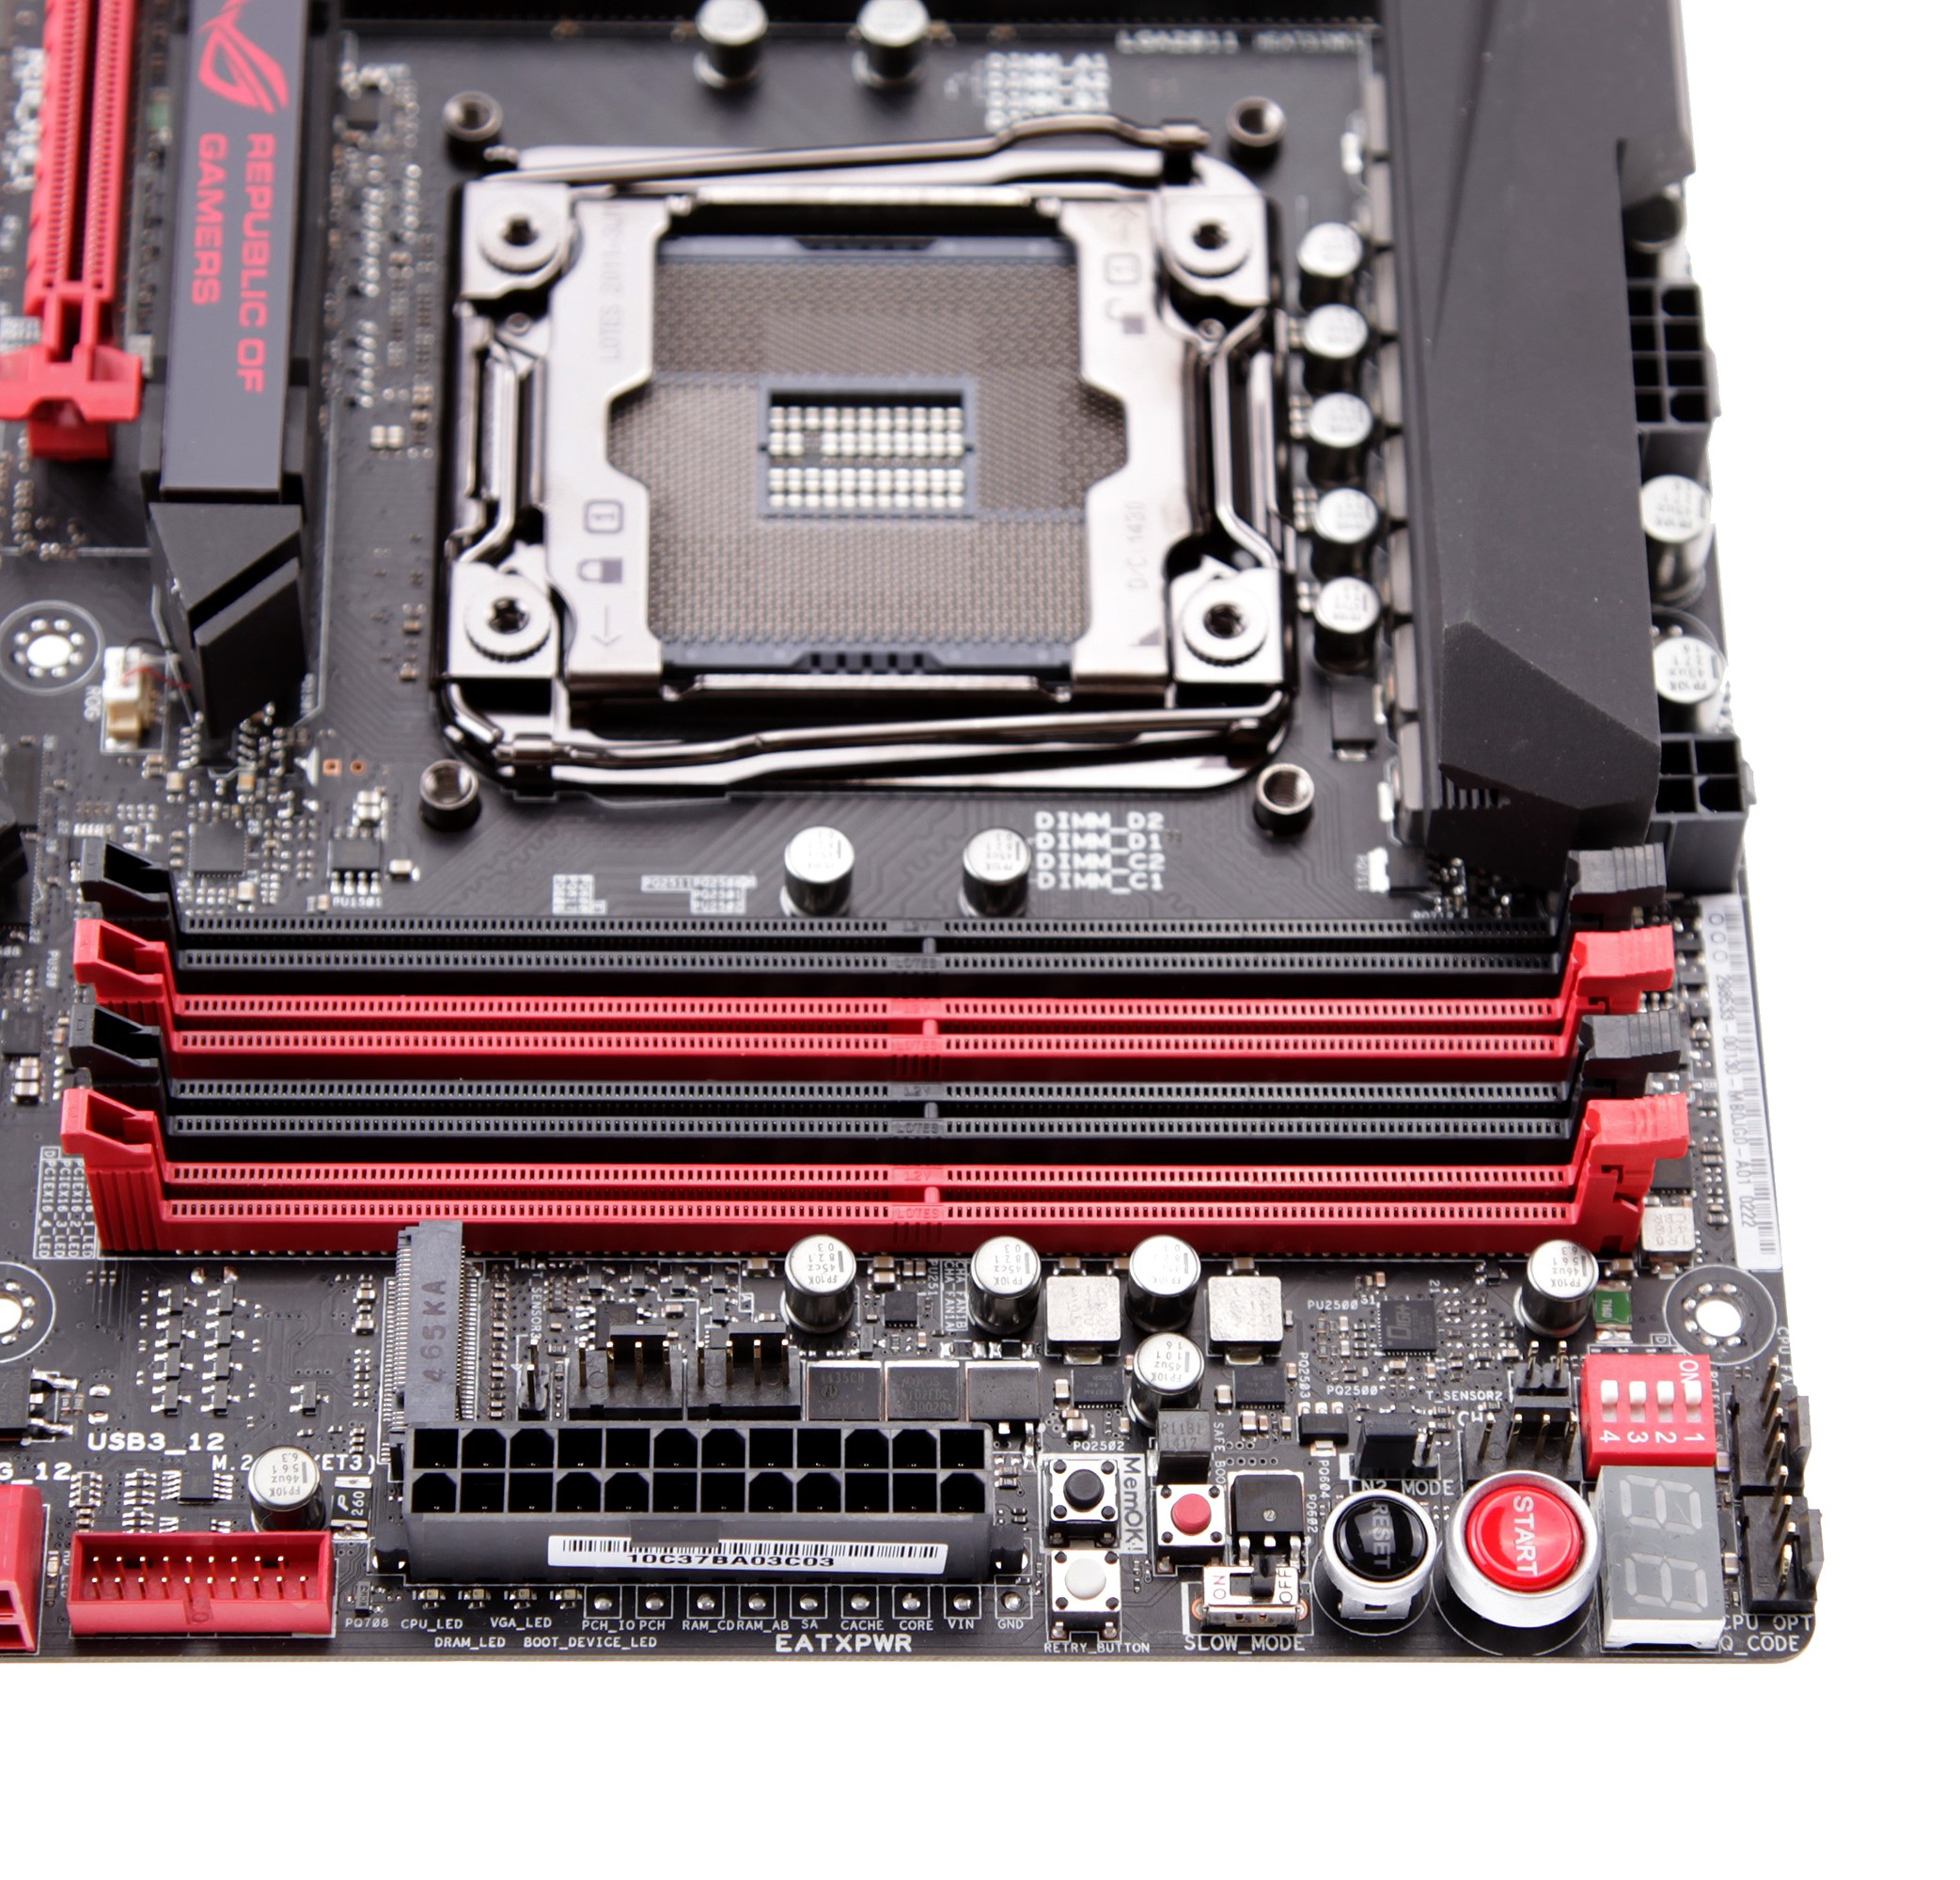 R5E_12 Motherboard buttons DIMM